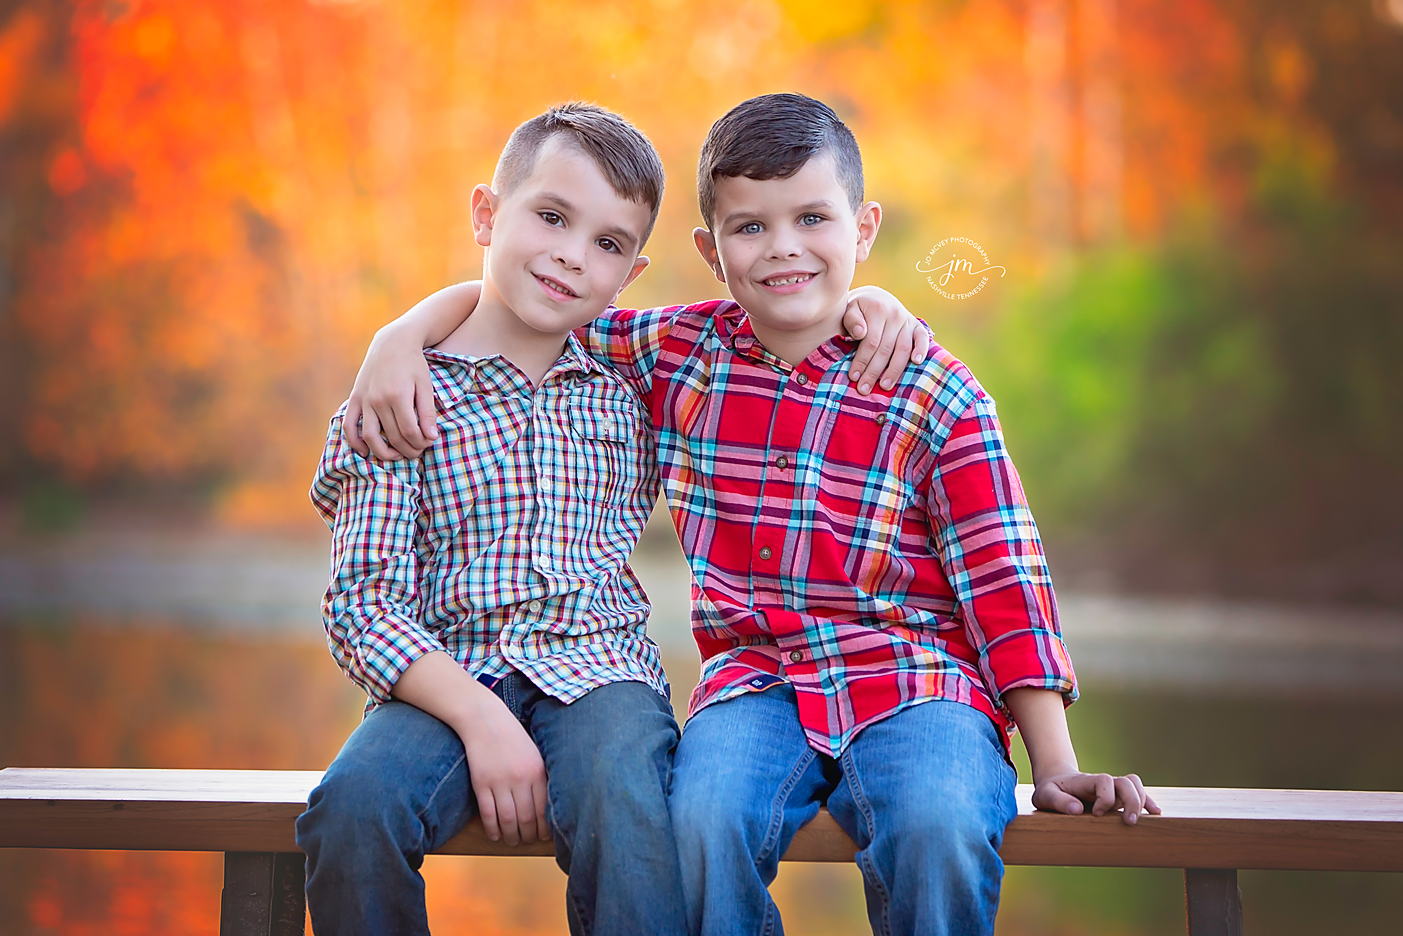 Brothers embracing on bench - Nashville Child Photographer | Jo McVey Photography